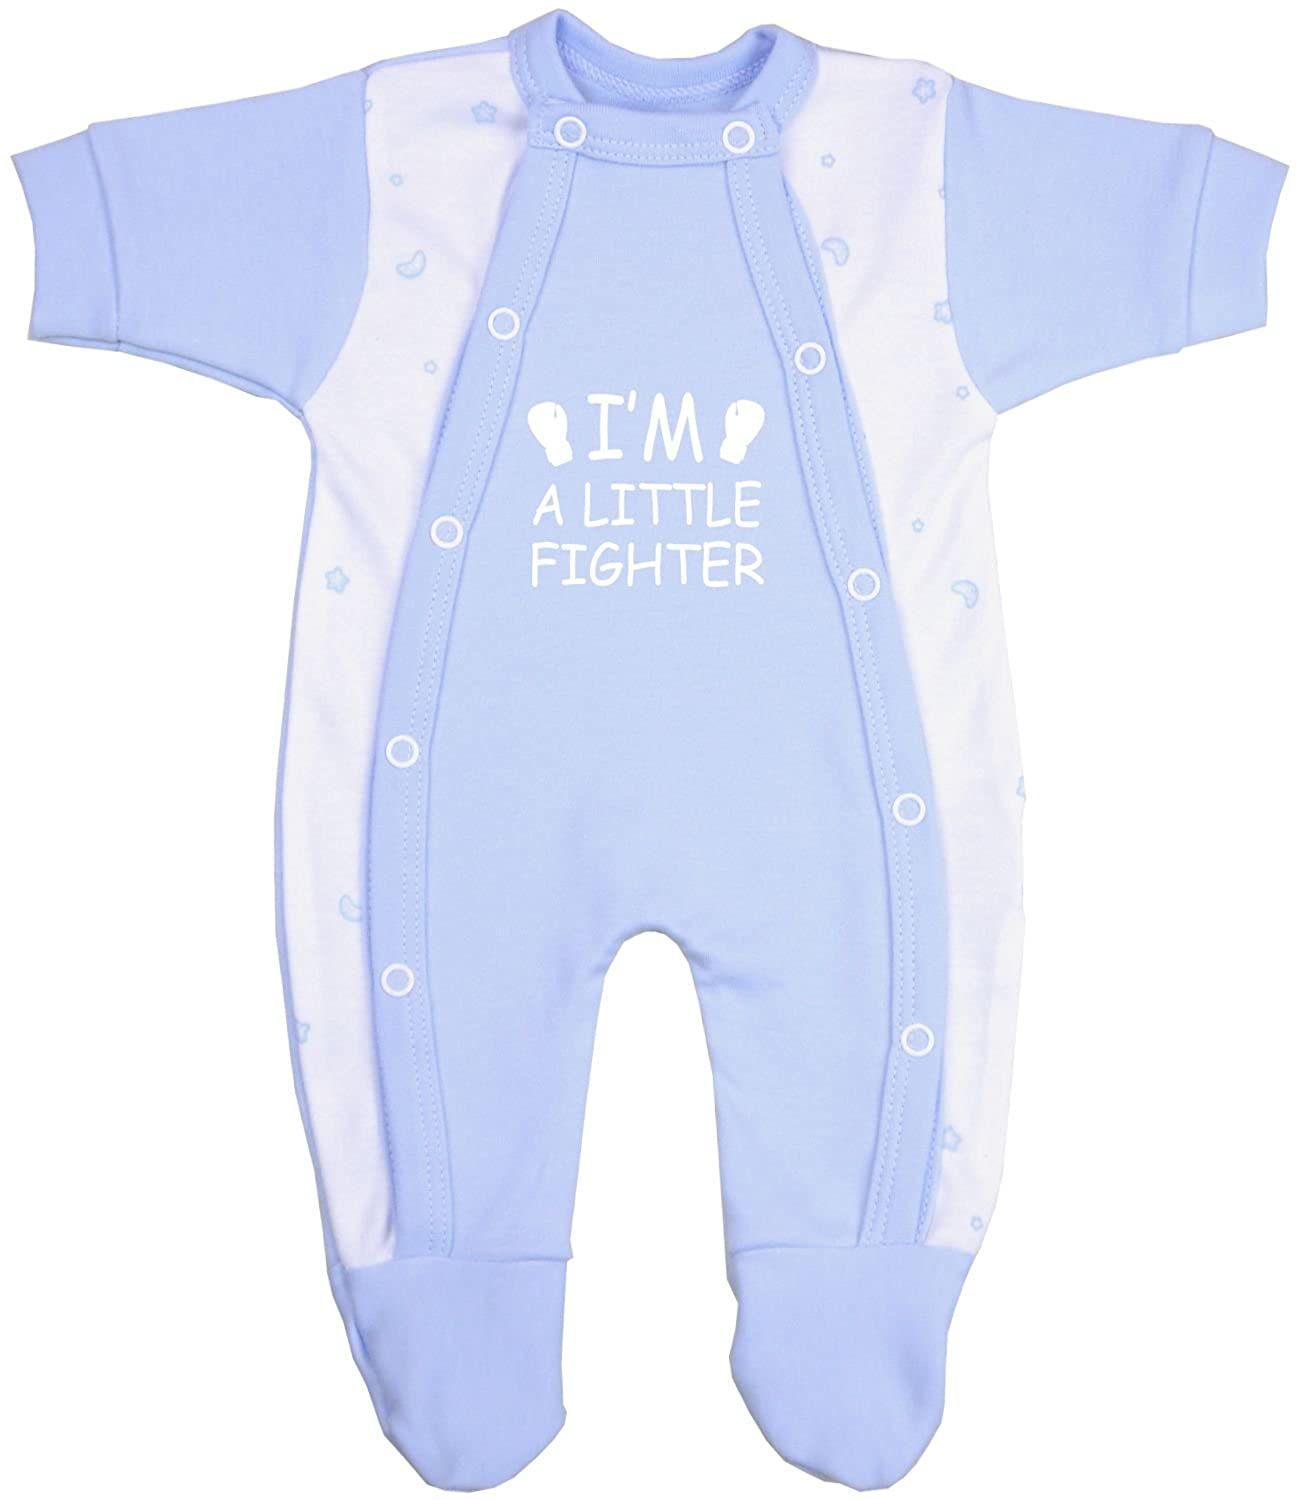 BabyPrem Preemie Baby Footie Sleeper Little Fighter Clothes 1.5-7.5lb